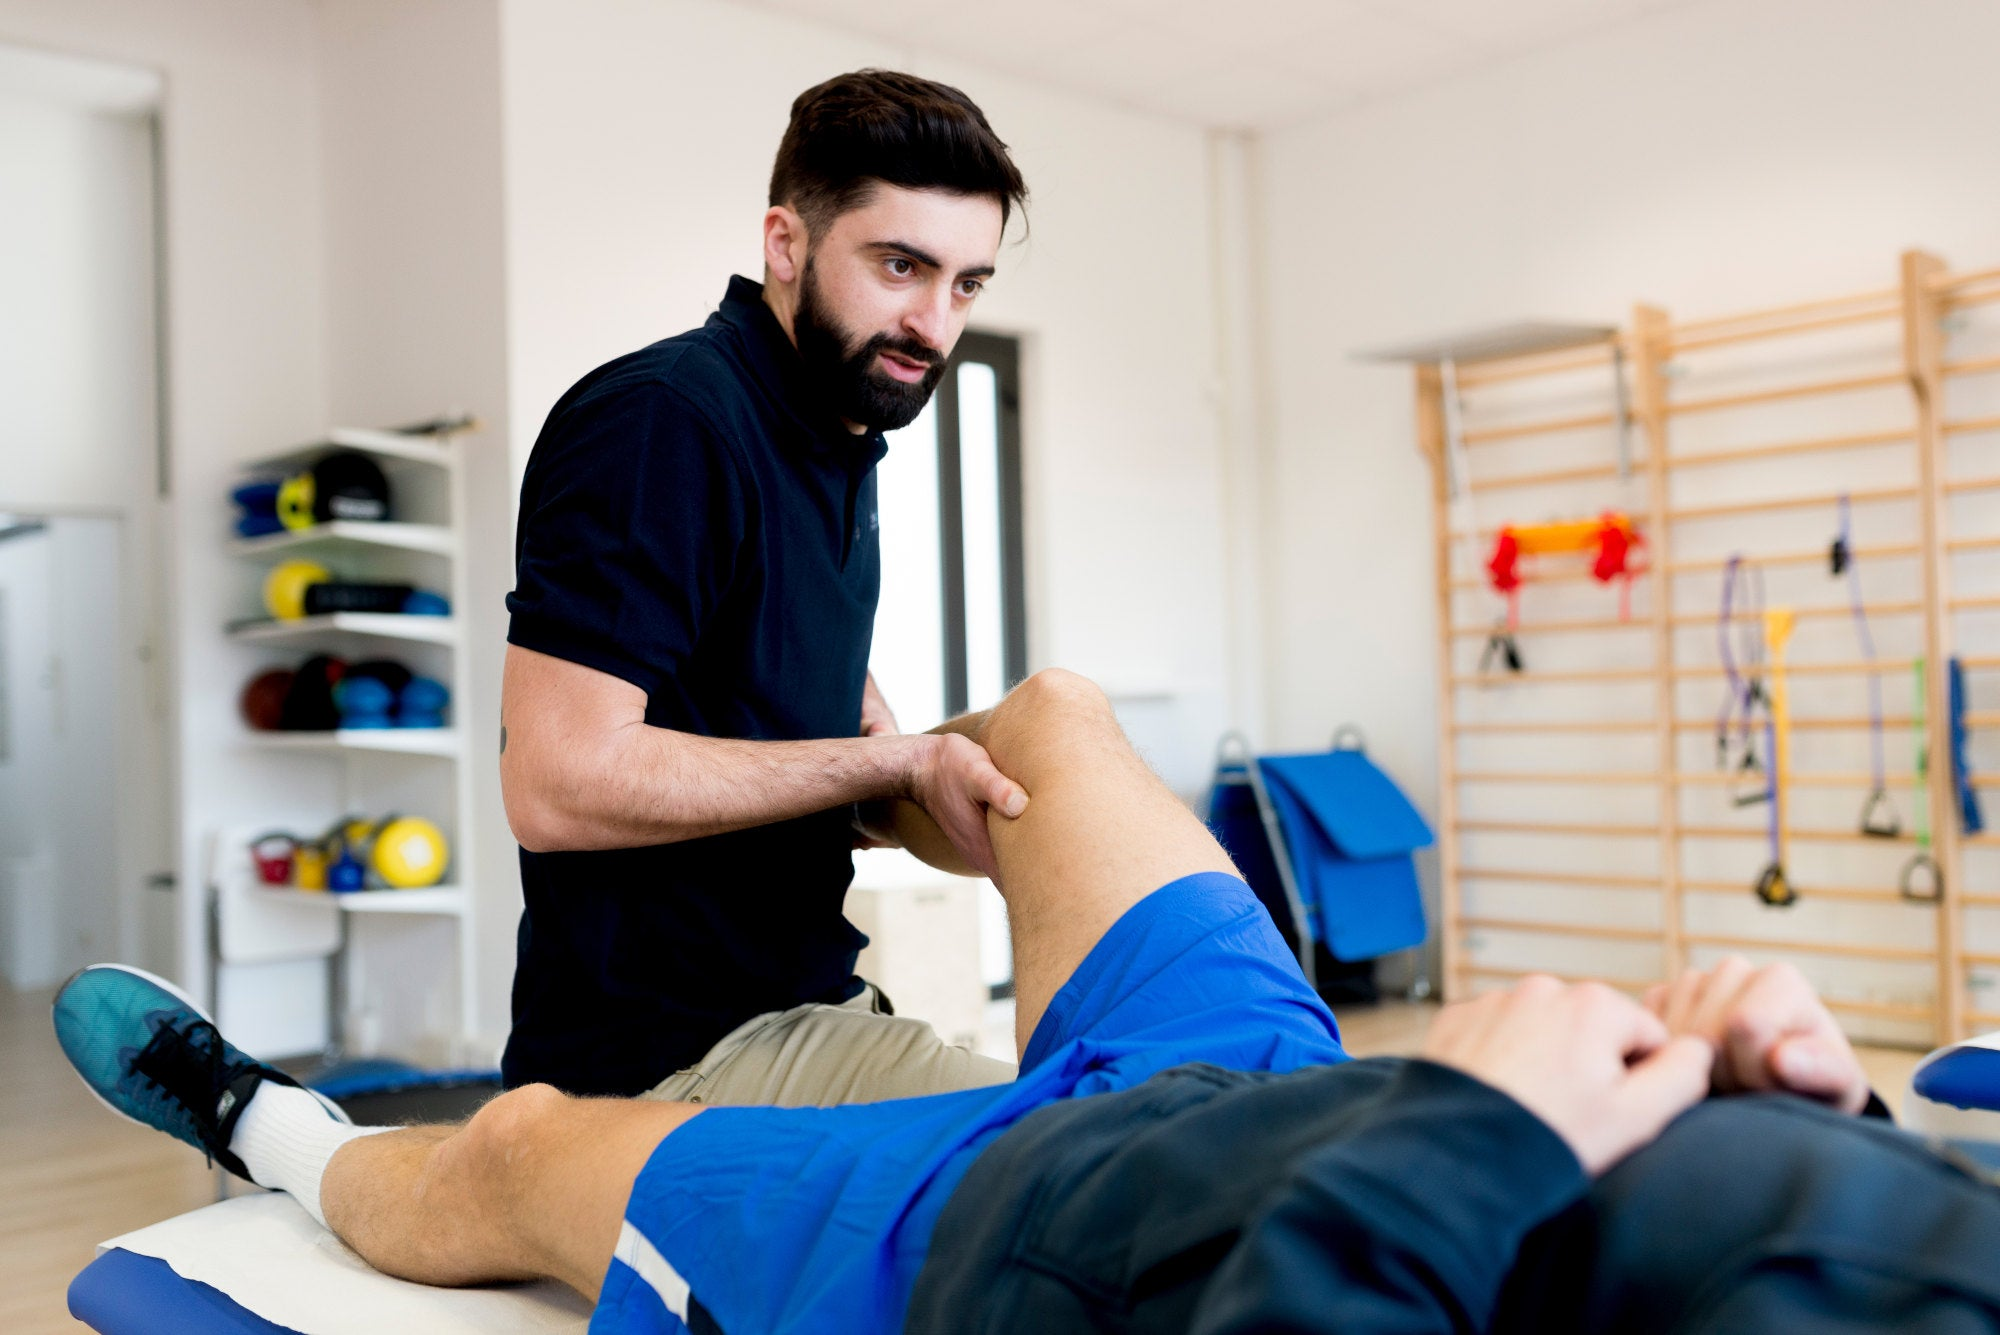 Physical trainer performing sports massage on athlete